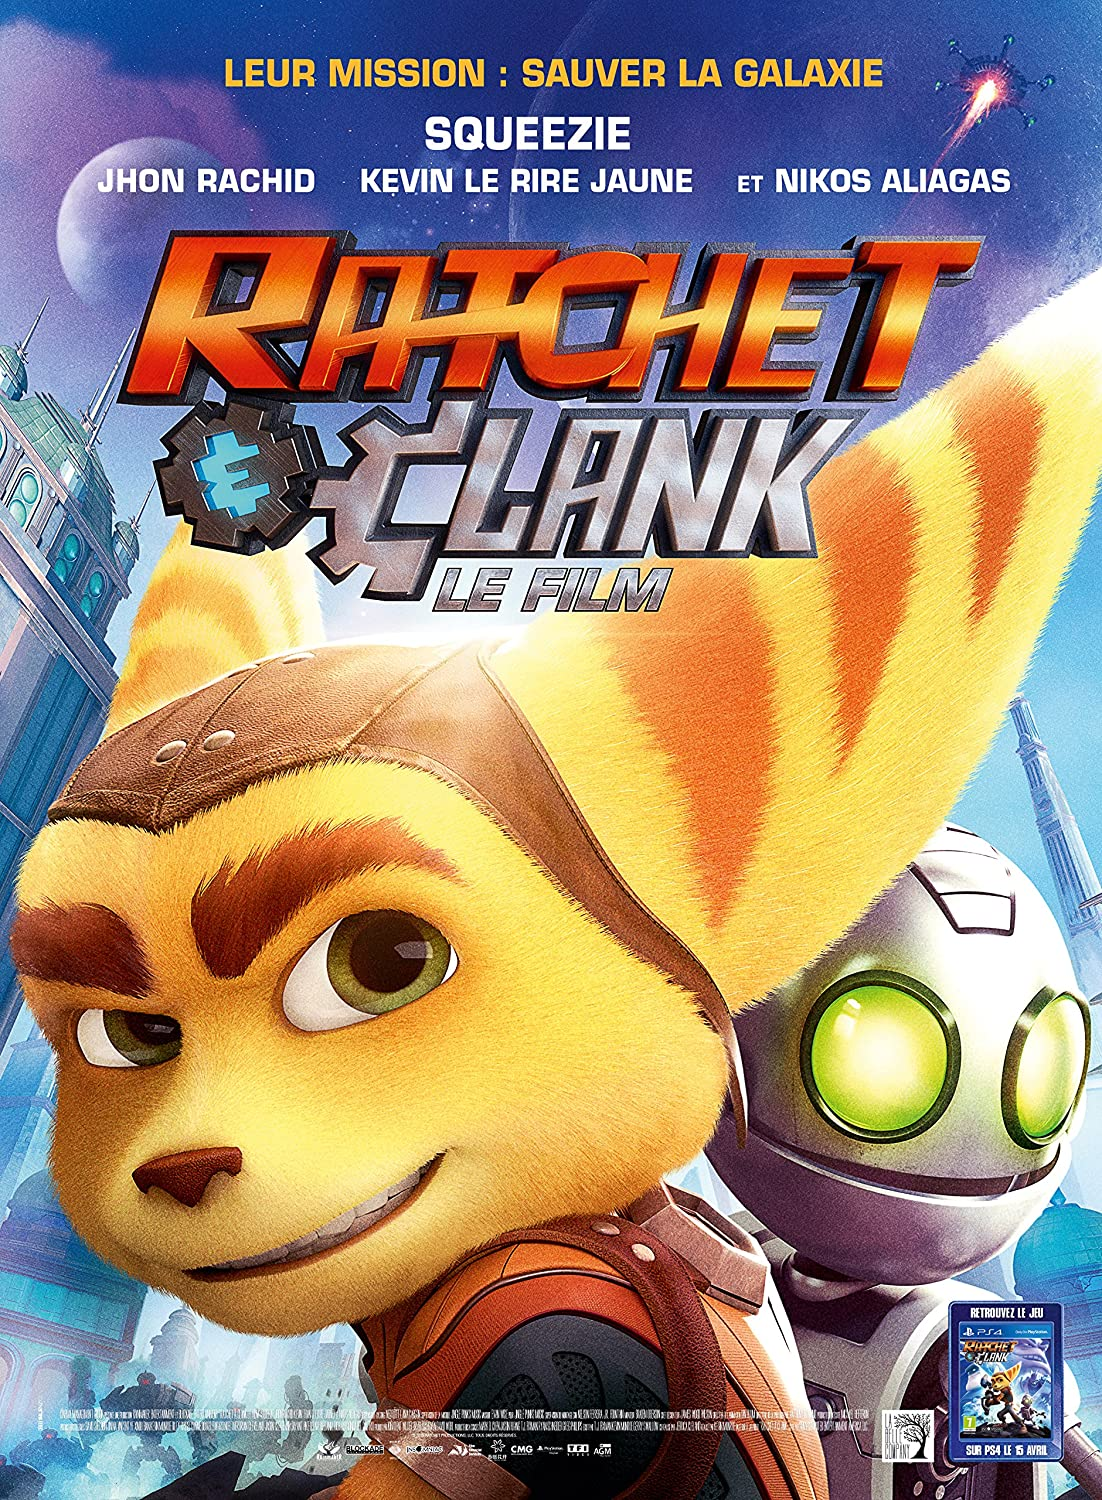 Ratchet & Clank Blu-ray 3D